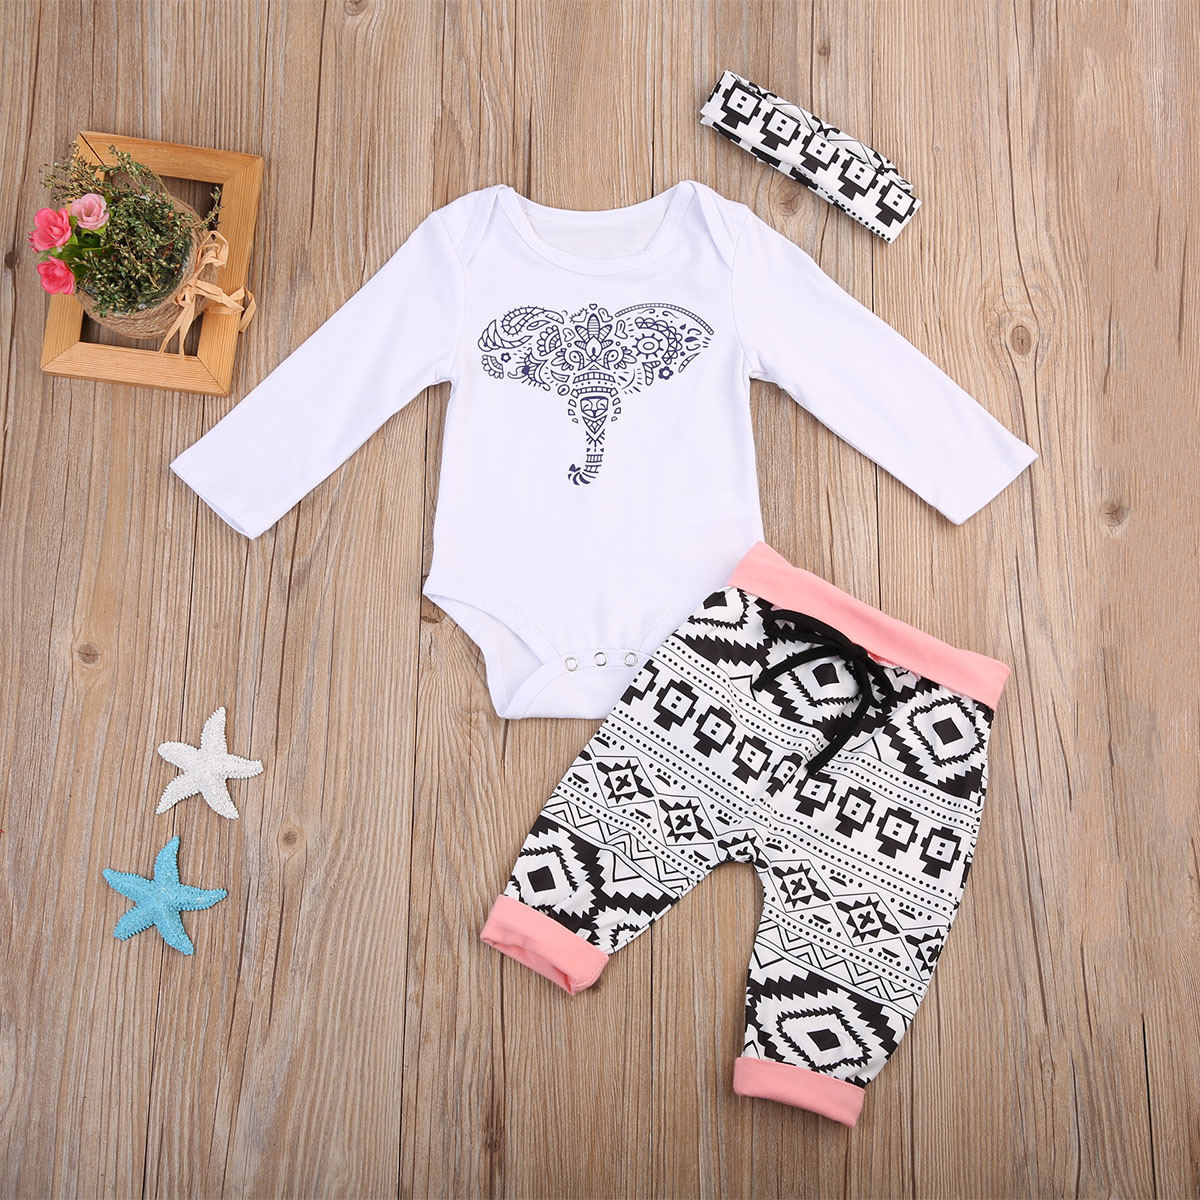 2017 Adorable 3pcs Set Infant Toddler Baby Boy Girl Tops Romper+Long Pants + Headbands Outfits Clothes Set